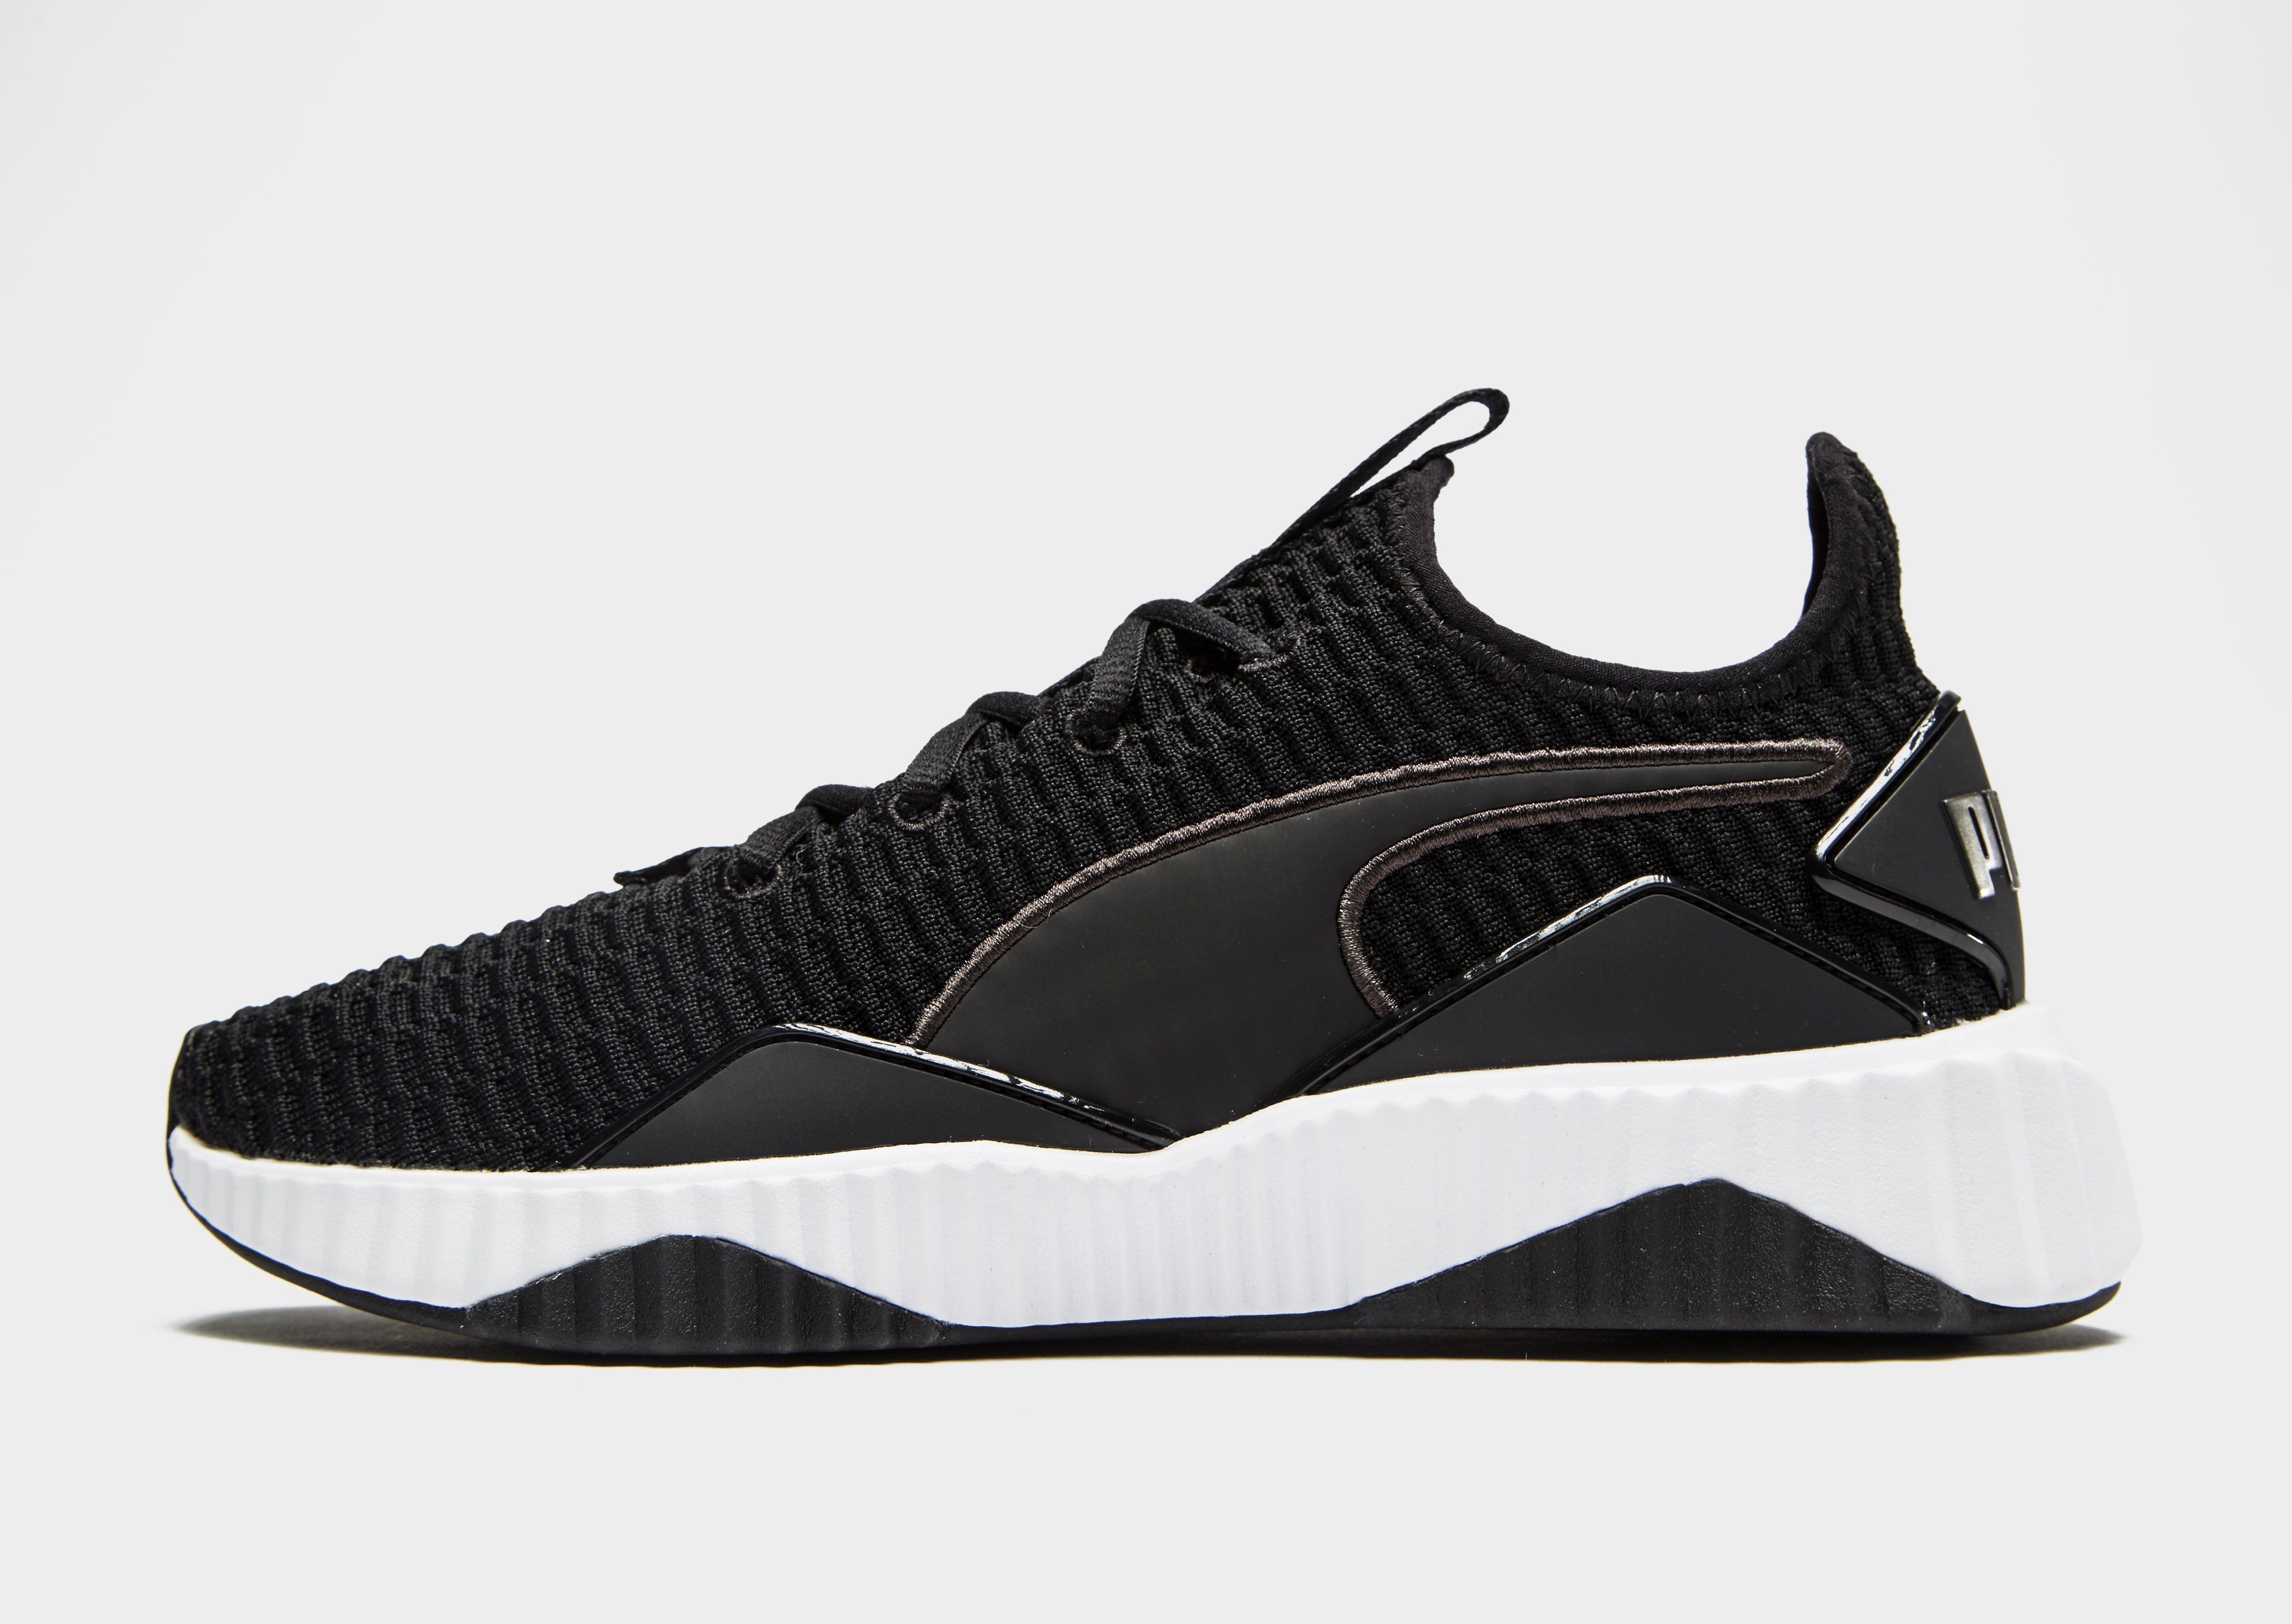 Sneakers 42 nere per Defy Defy Sneakers donna Puma per donna 42 Puma Sneakers 42 nere 4Bwq0